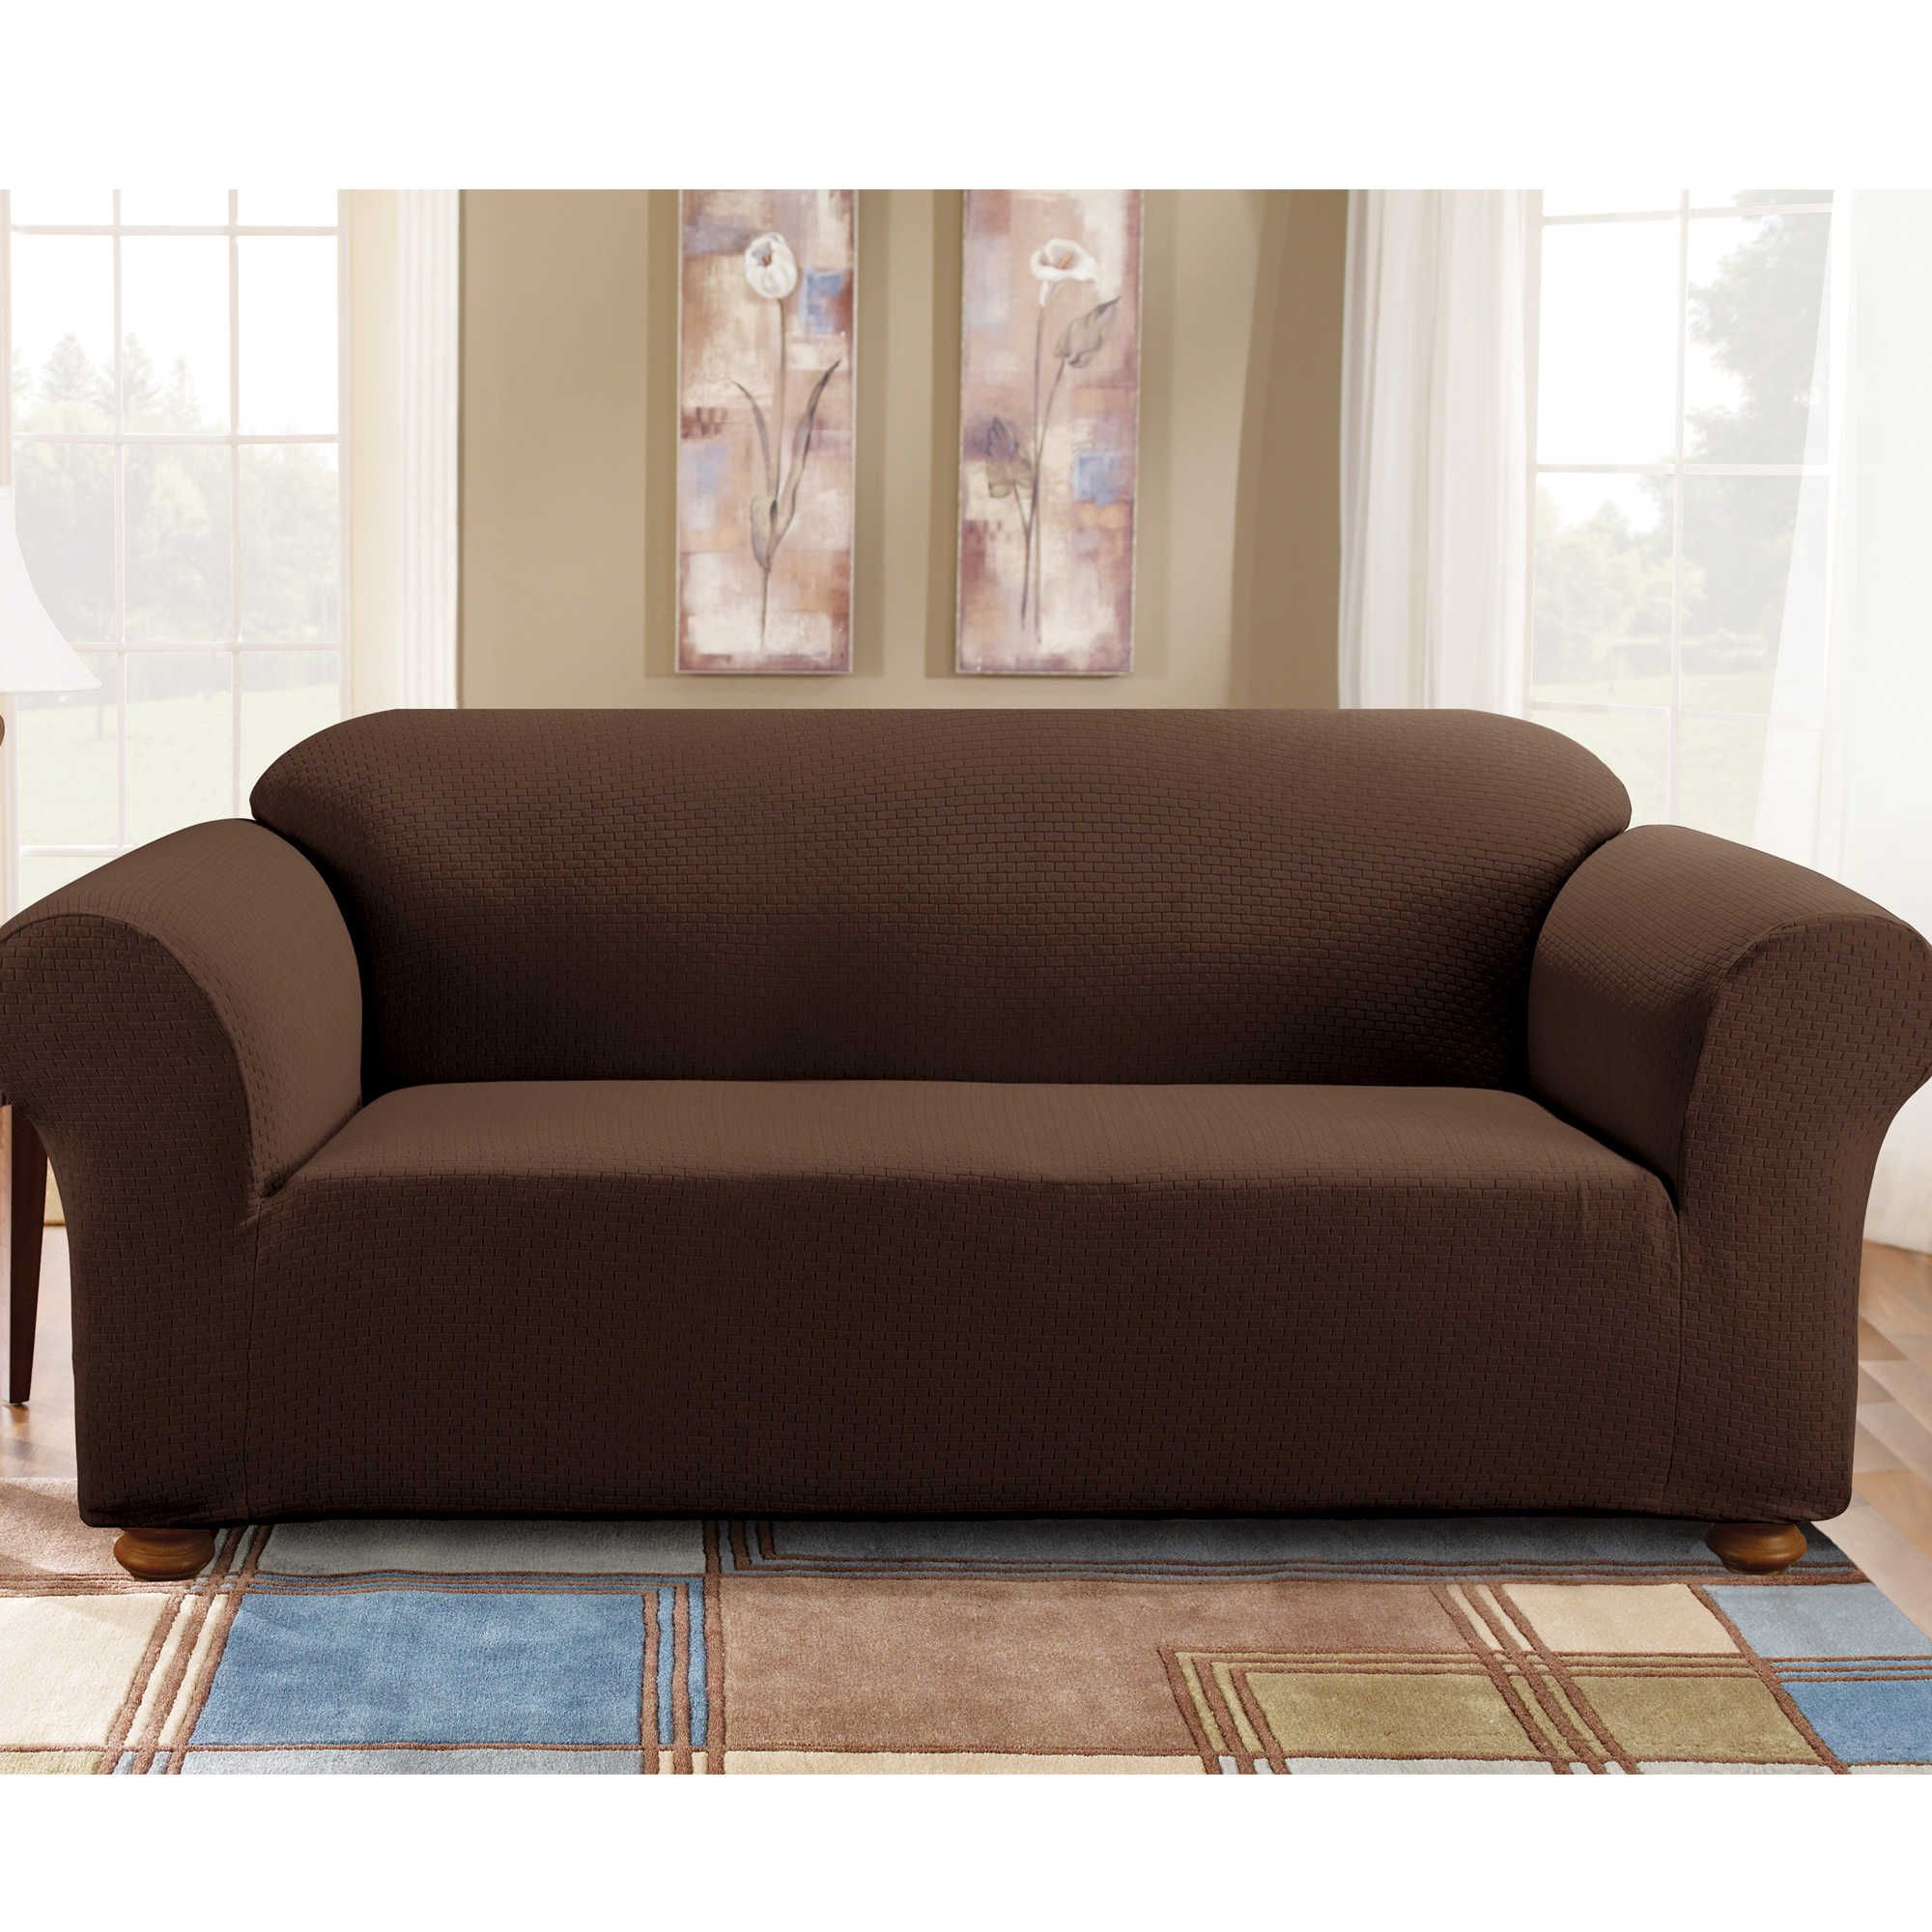 Sure Fit Simple Stretch Subway Tile 1Piece Sofa Slipcover in